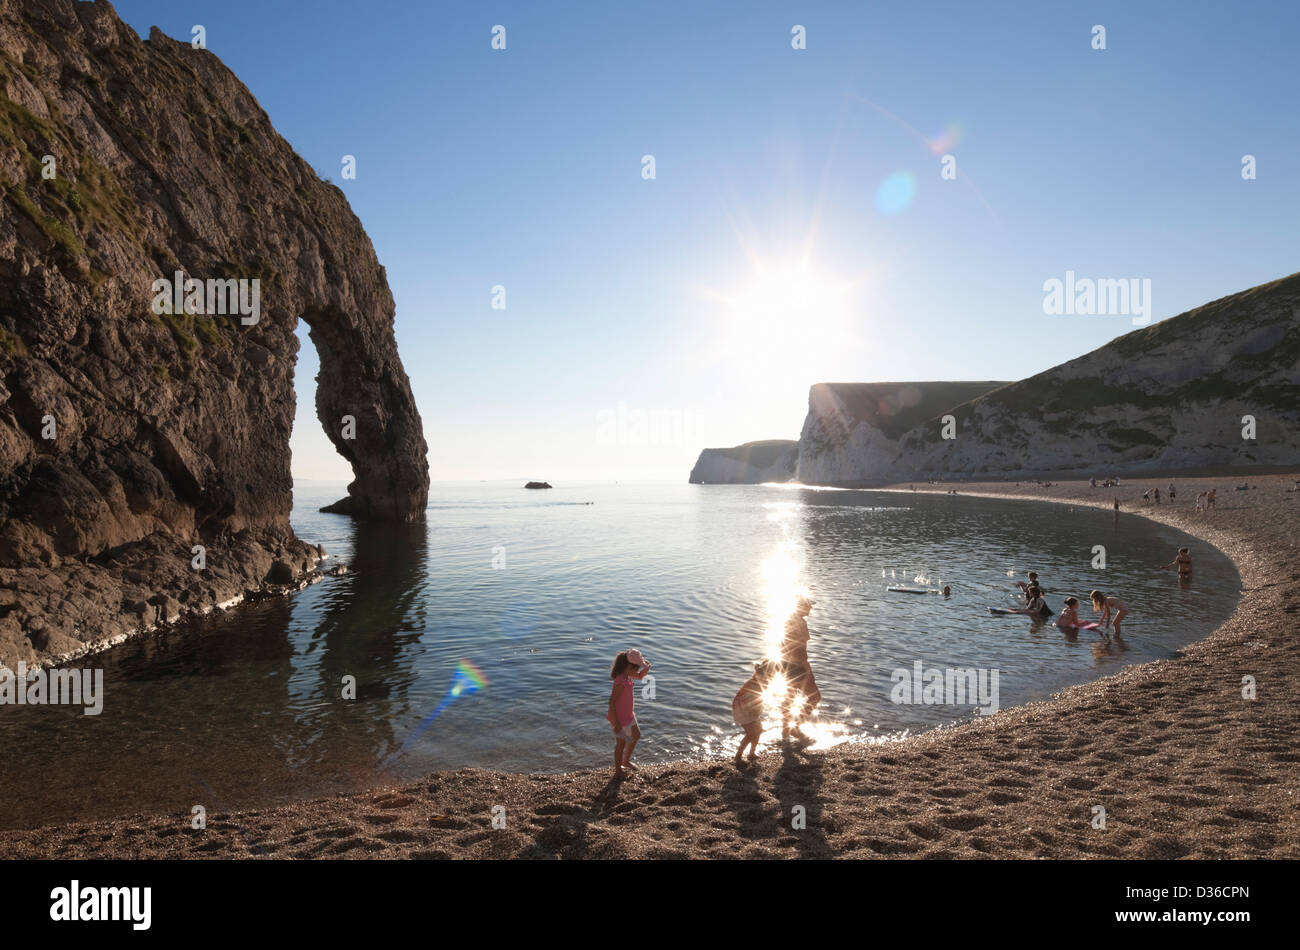 Family on Durdle Door beach, Dorset, England Stock Photo